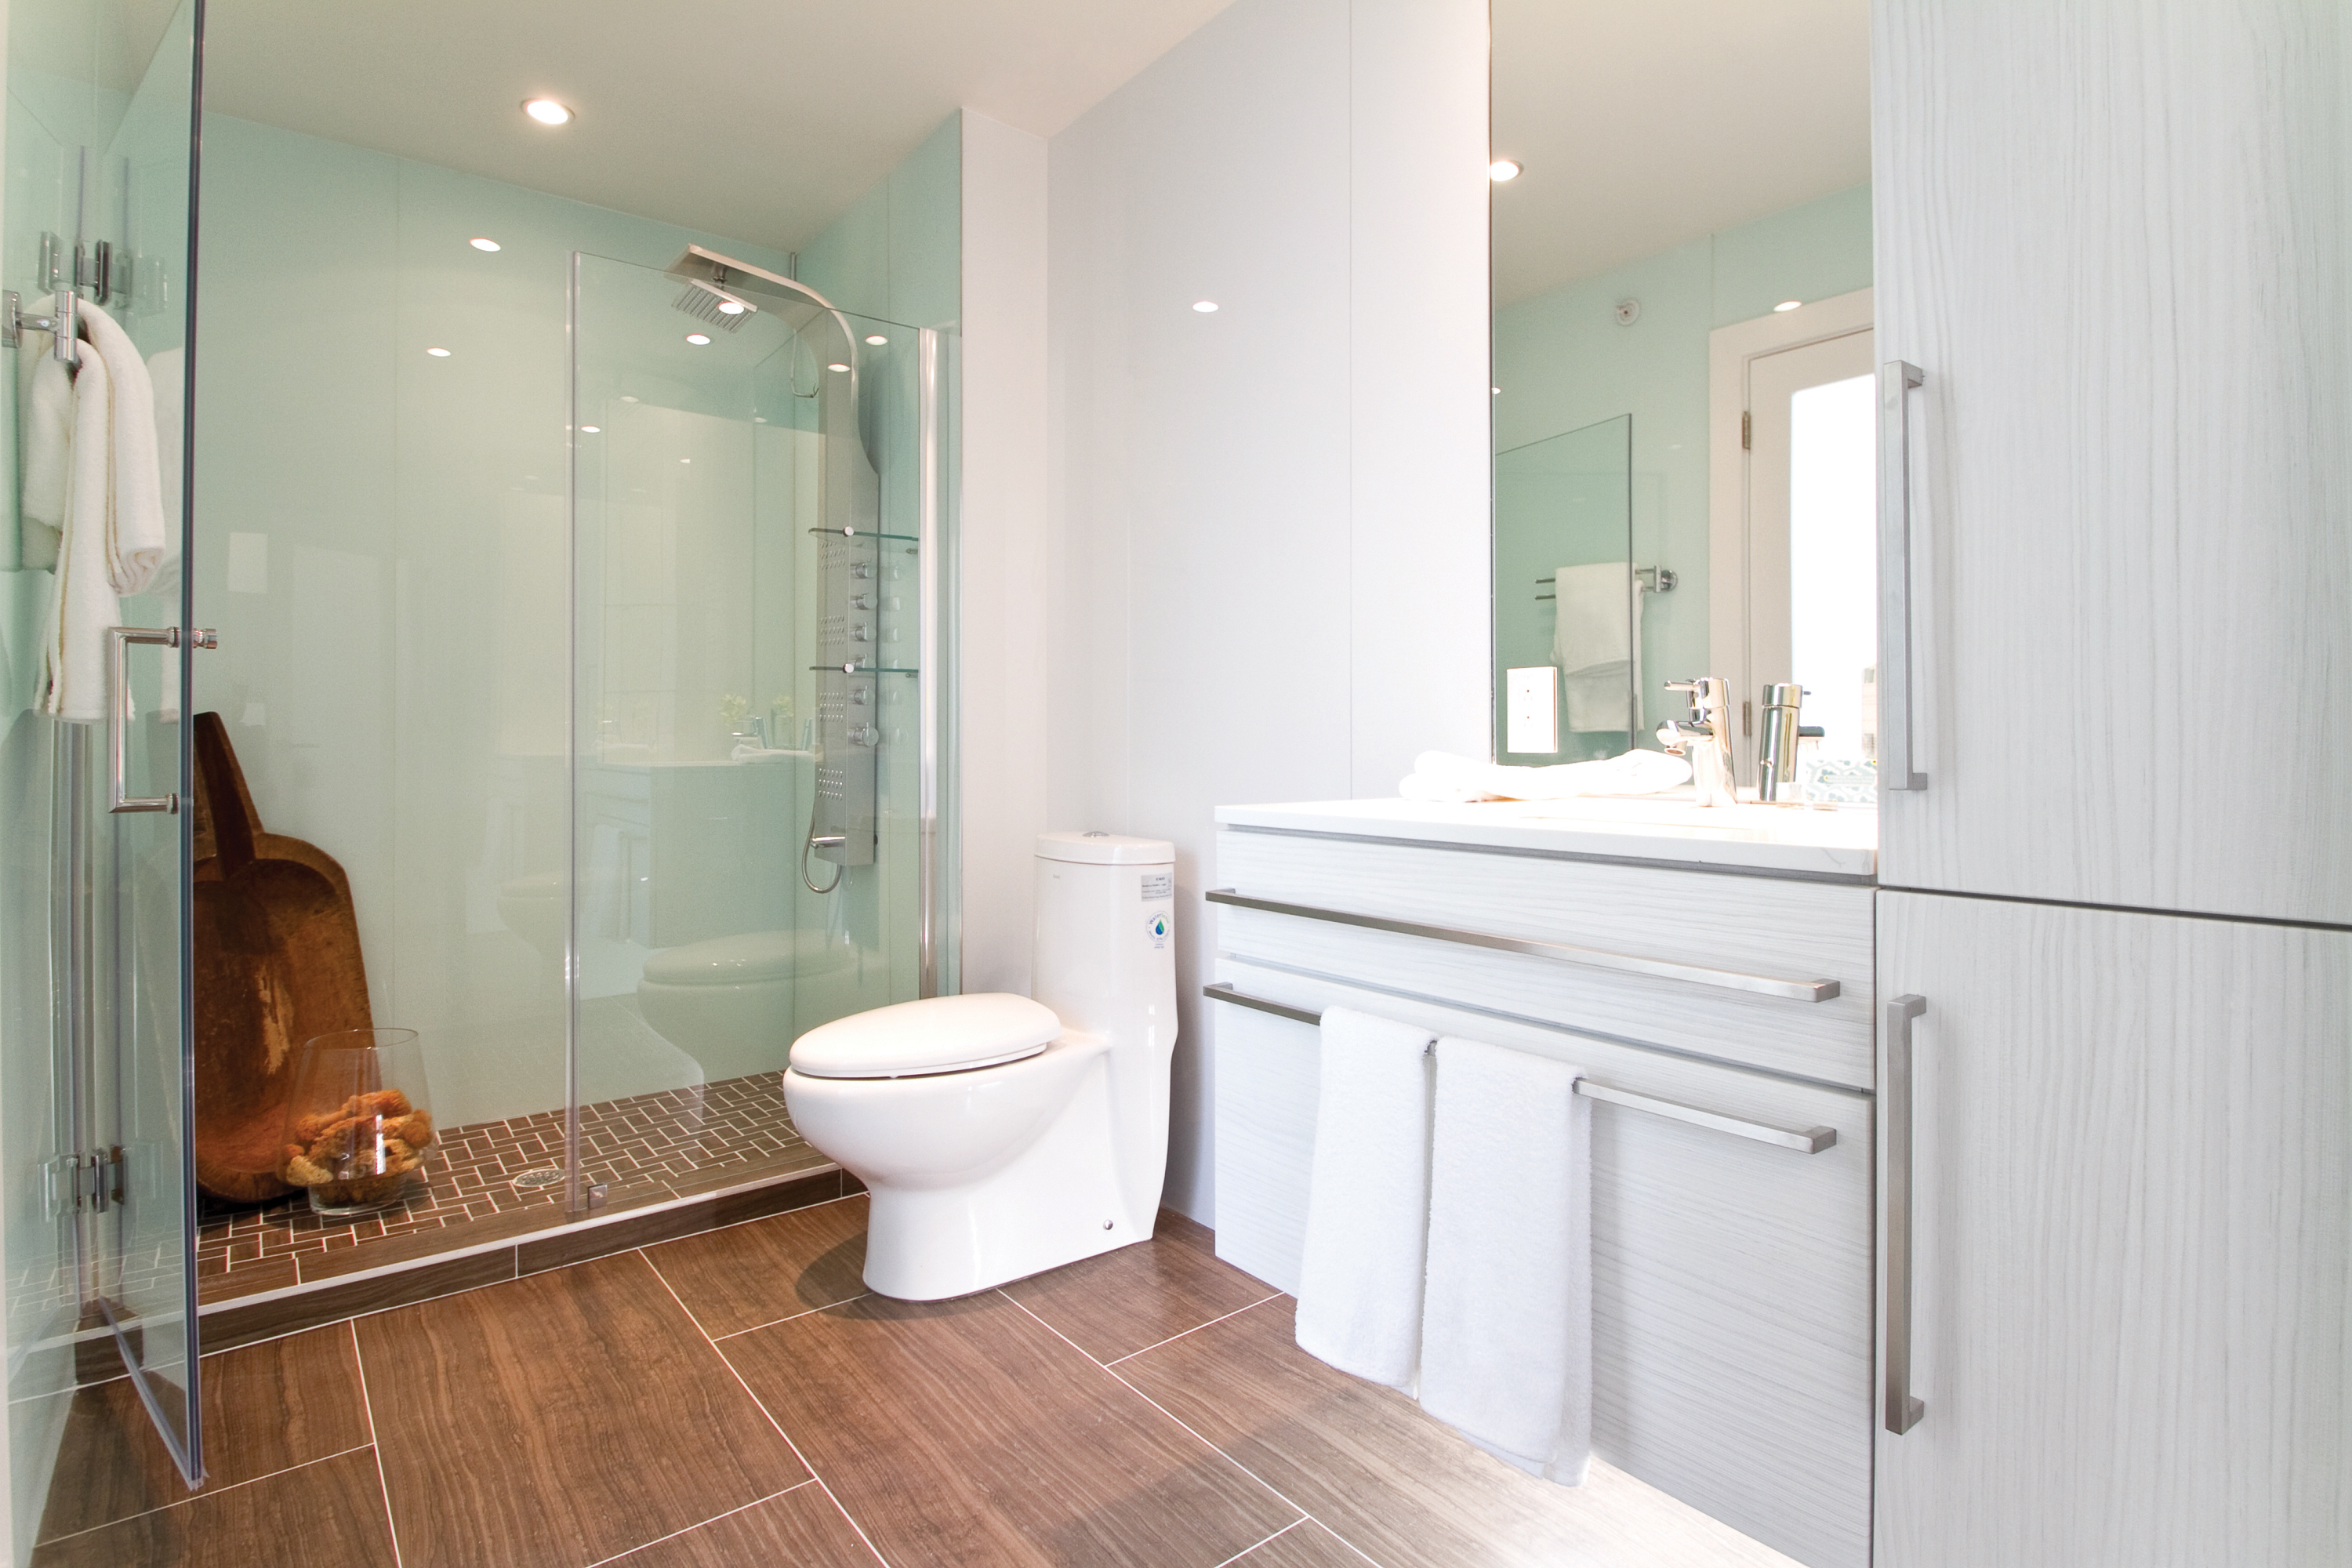 Bathroom flooring options for Bathroom bazzar